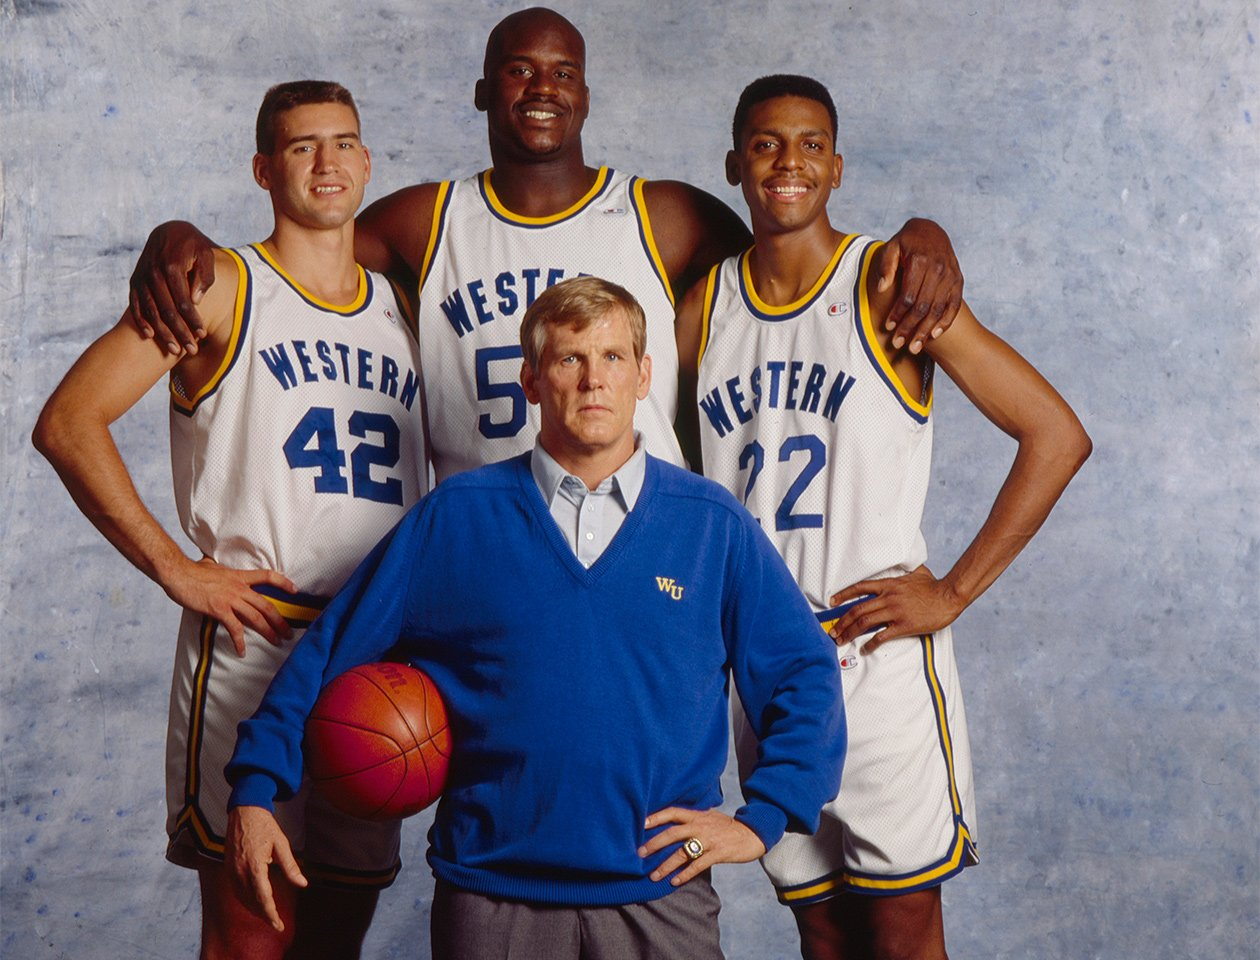 Ricky Roe, Neon Boudeaux and Butch McRae pose with Western coach Pete Bell during a 1993 SI photo shoot. https://t.co/DpFBb8MrA8